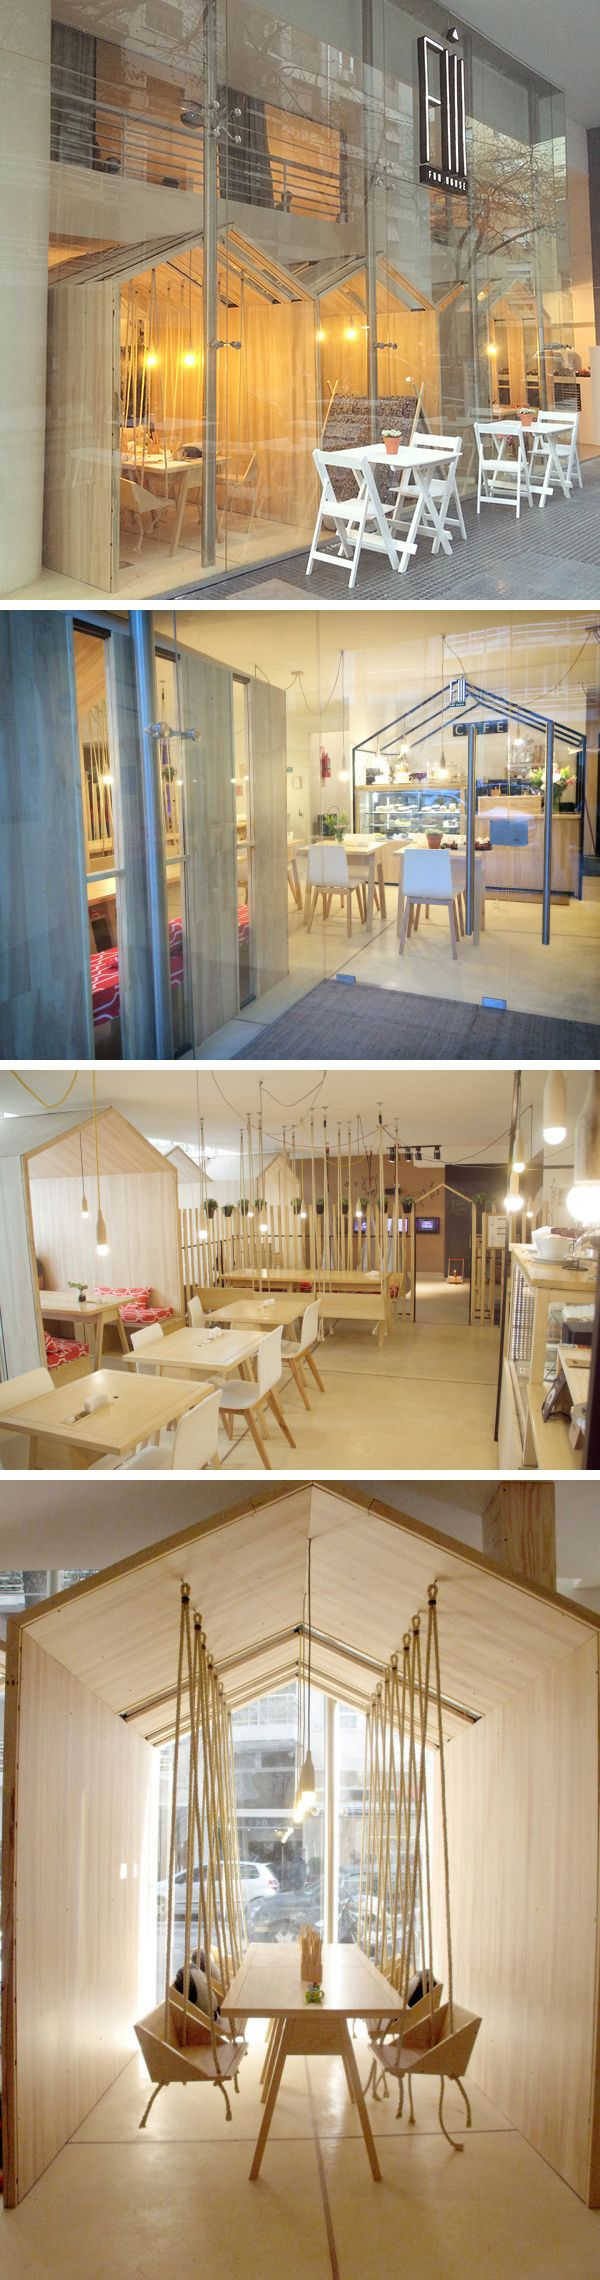 Fii Fun House - a clever, fun, children friendly restaurant in Buenos Aires, Argentina.